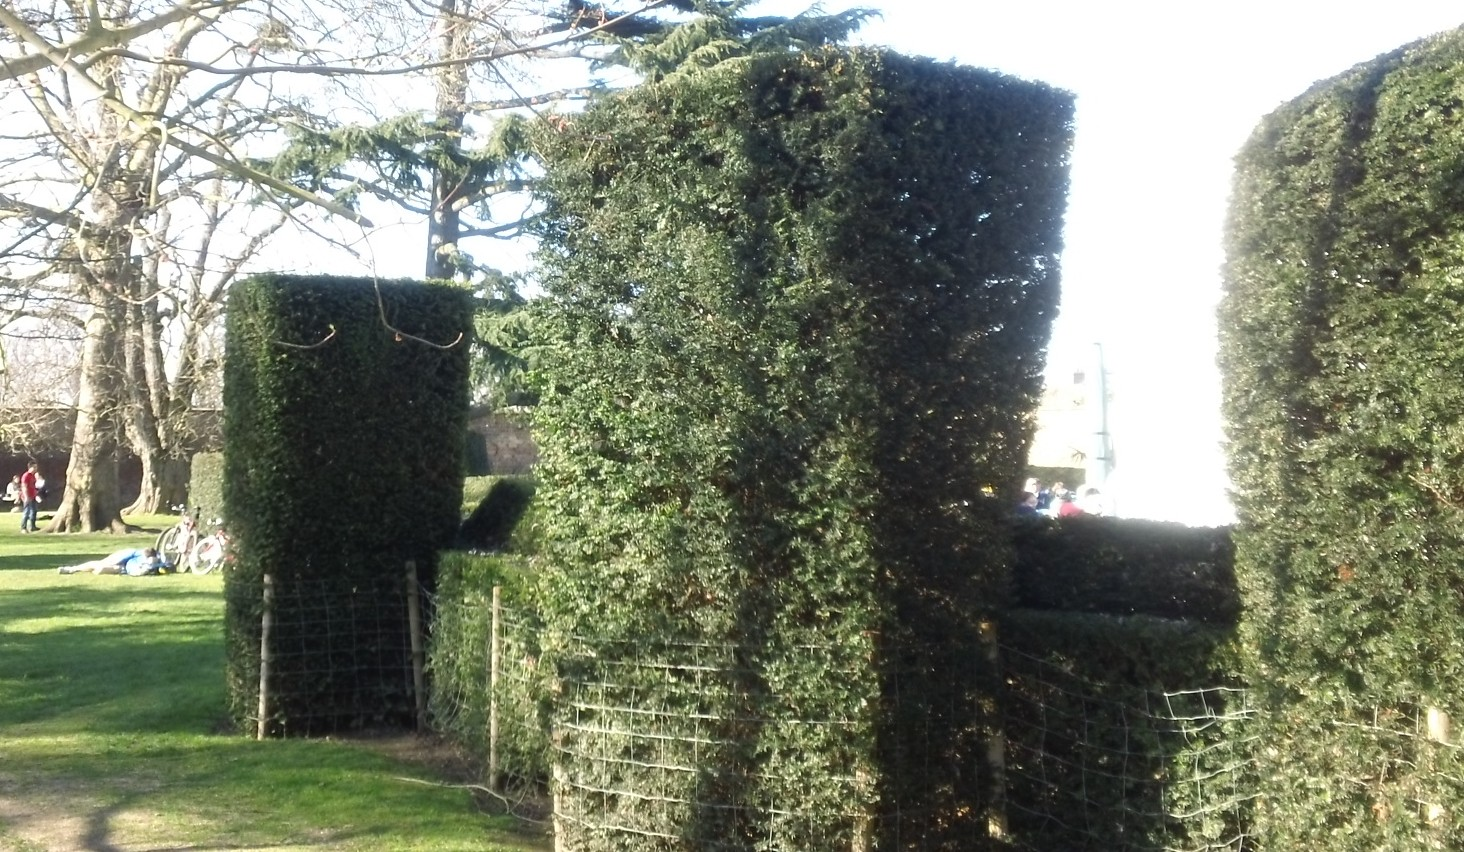 Topiaries Hedge to keep out the wind at the cafeteria entrance